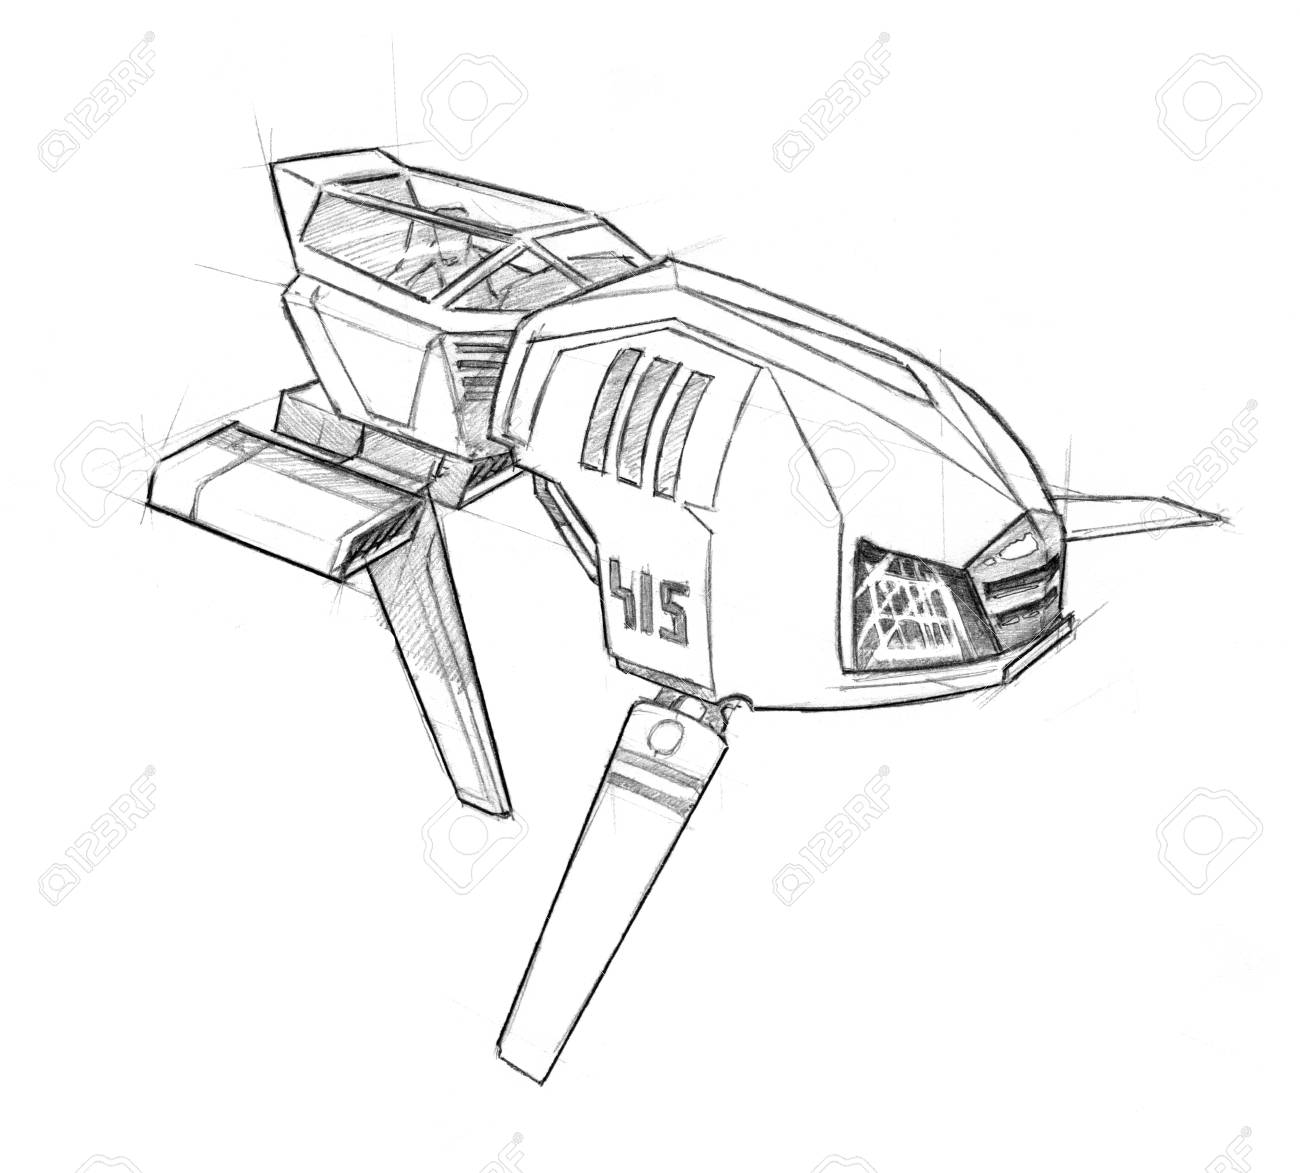 Black And White Ink Concept Art Drawing Of Futuristic Or Sci Fi Stock Photo Picture And Royalty Free Image Image 113856395